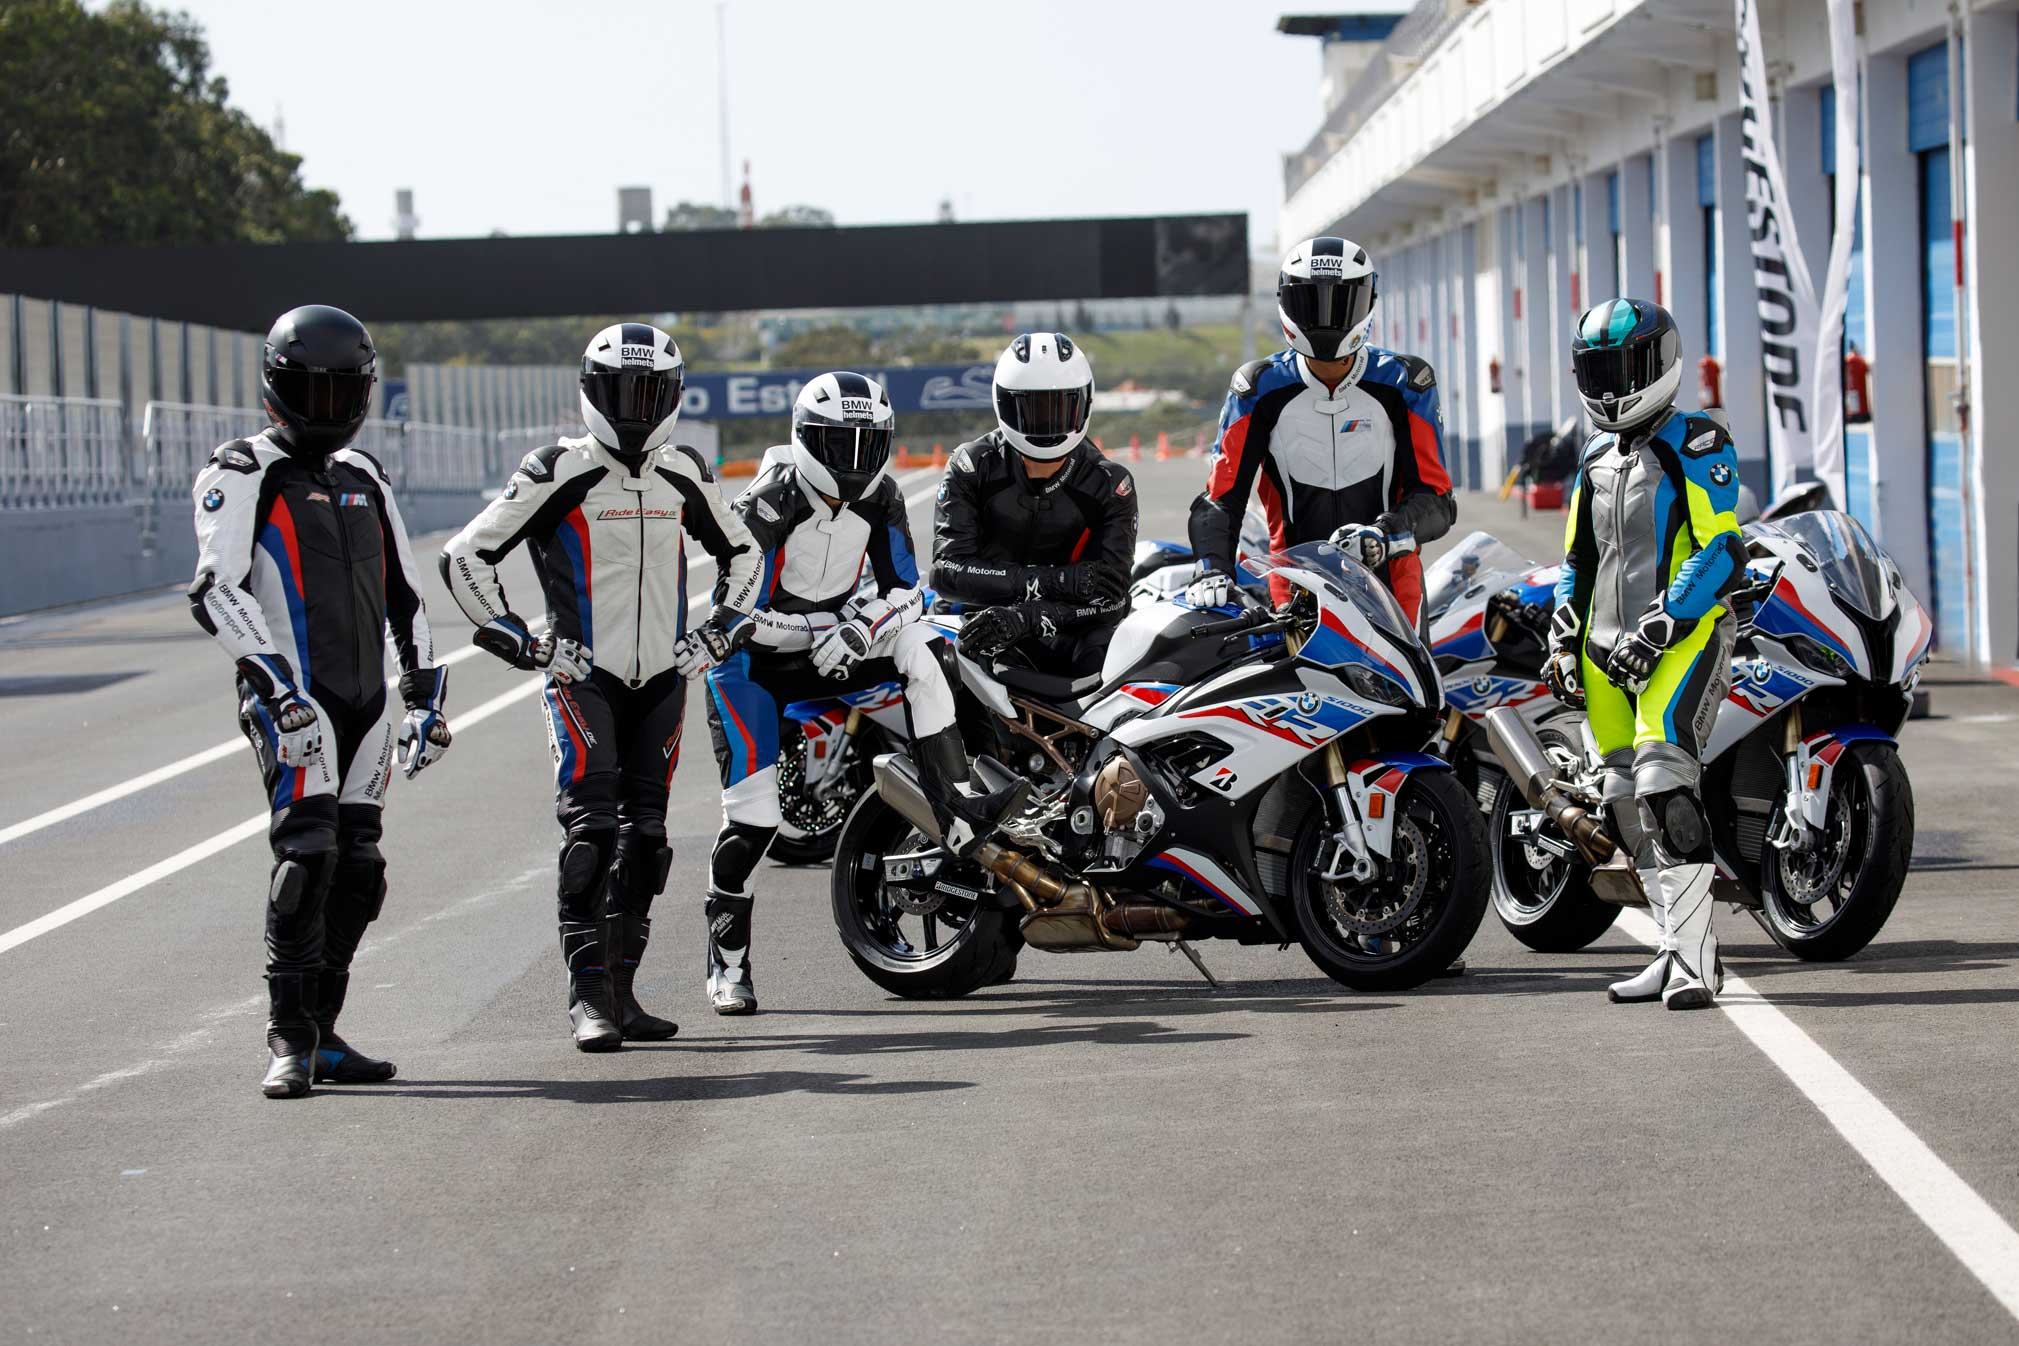 New BMW Motorcycle >> Podium For Tom Sykes And The Bmw Motorrad Worldsbk Team At